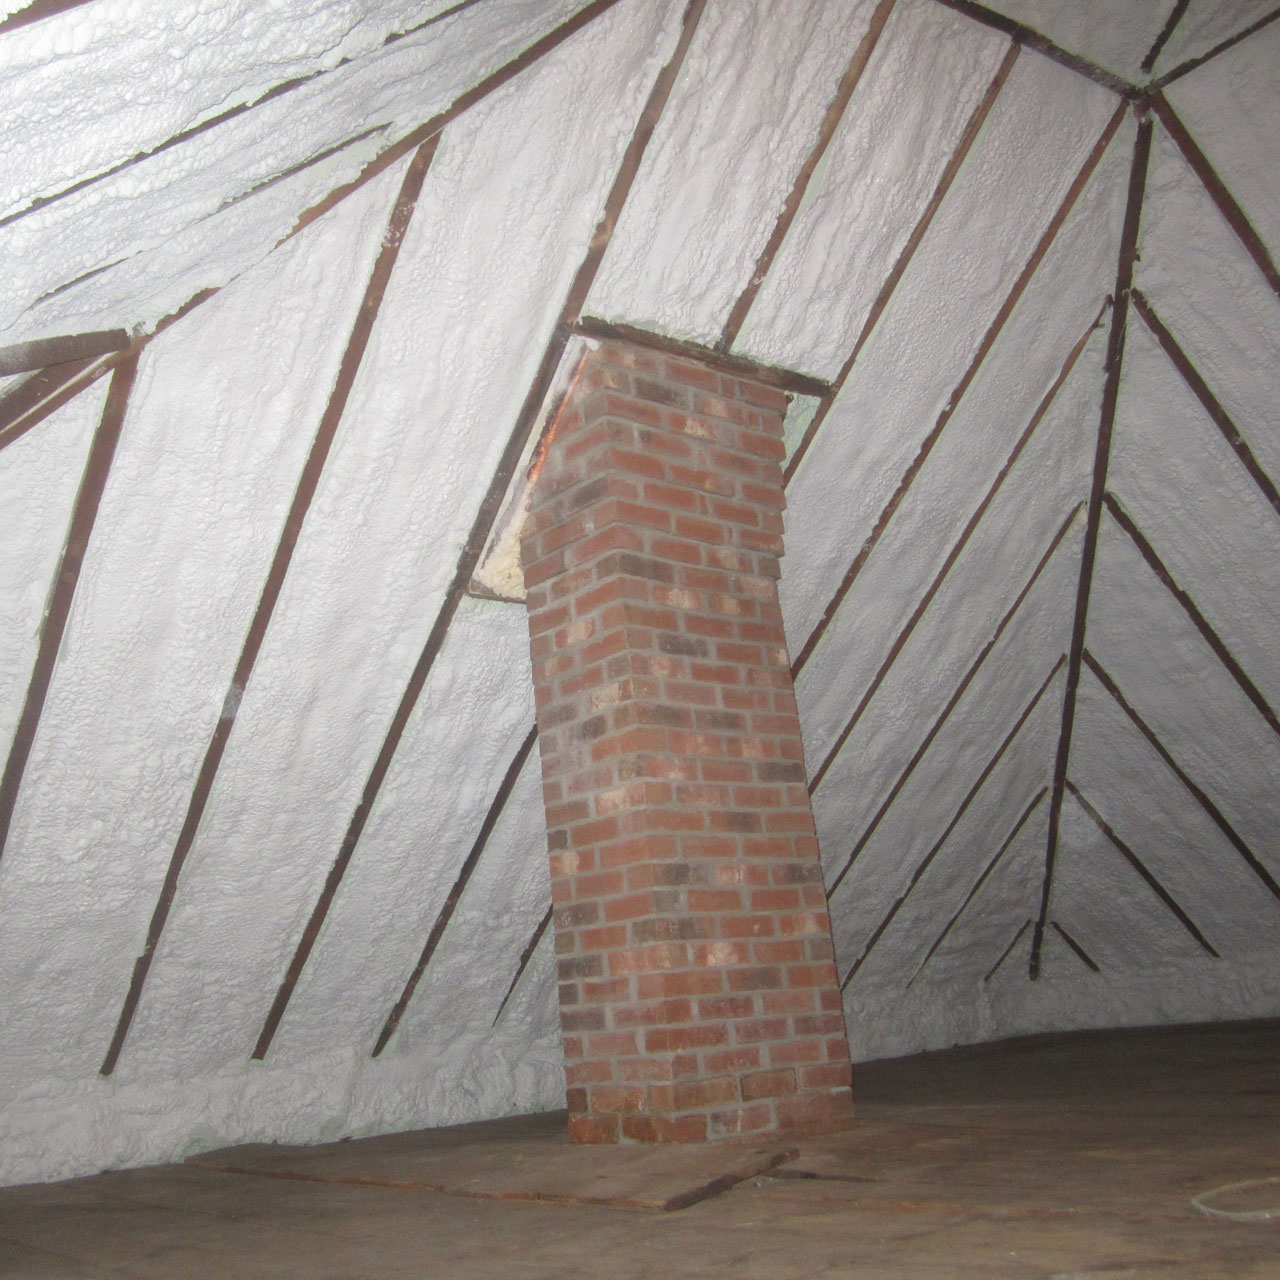 Benefits Of Spray Foam Attic Insulation • Attic Ideas